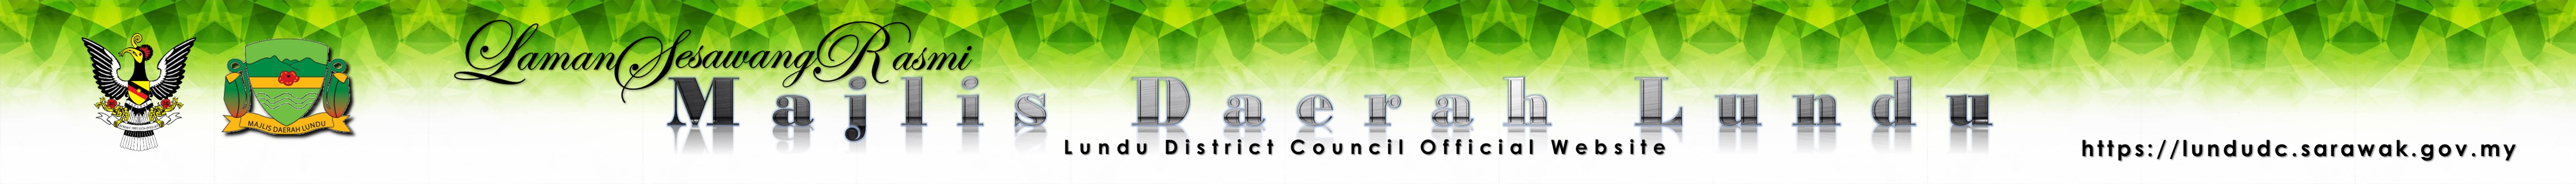 Welcome to Official Website of Lundu District Council